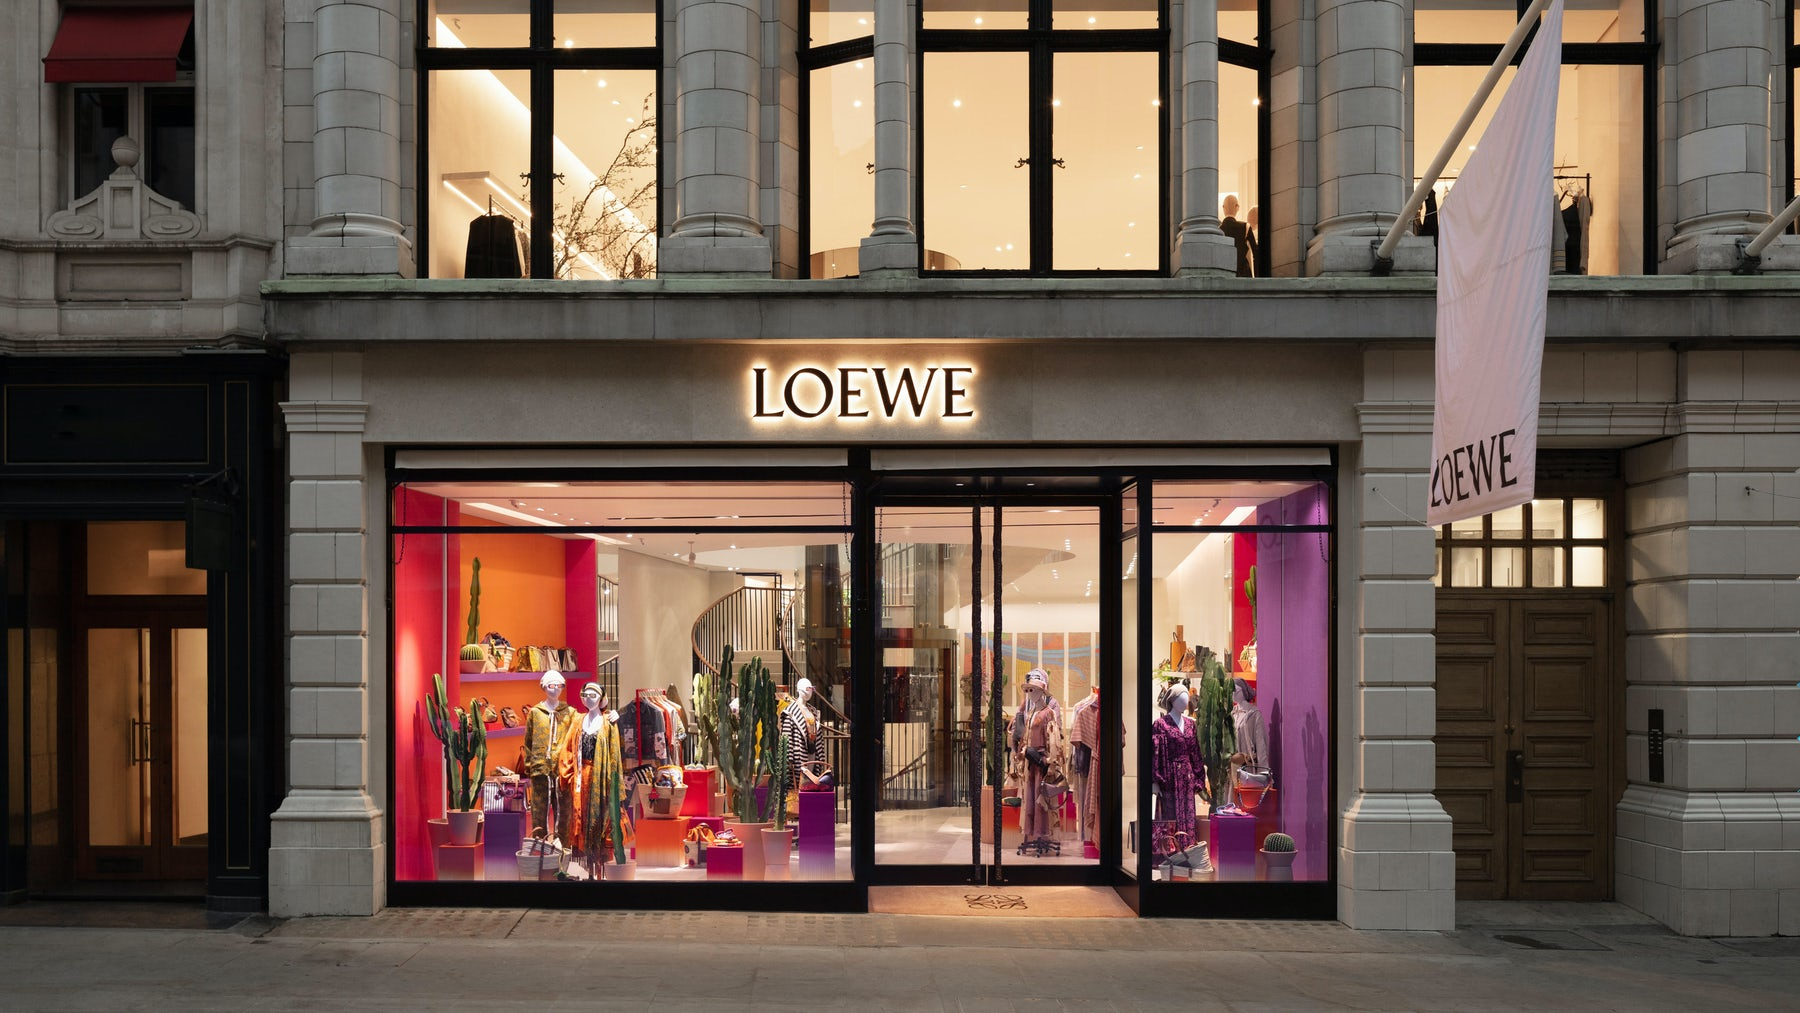 Loewe Bets on Ready-to-Wear with New London Store